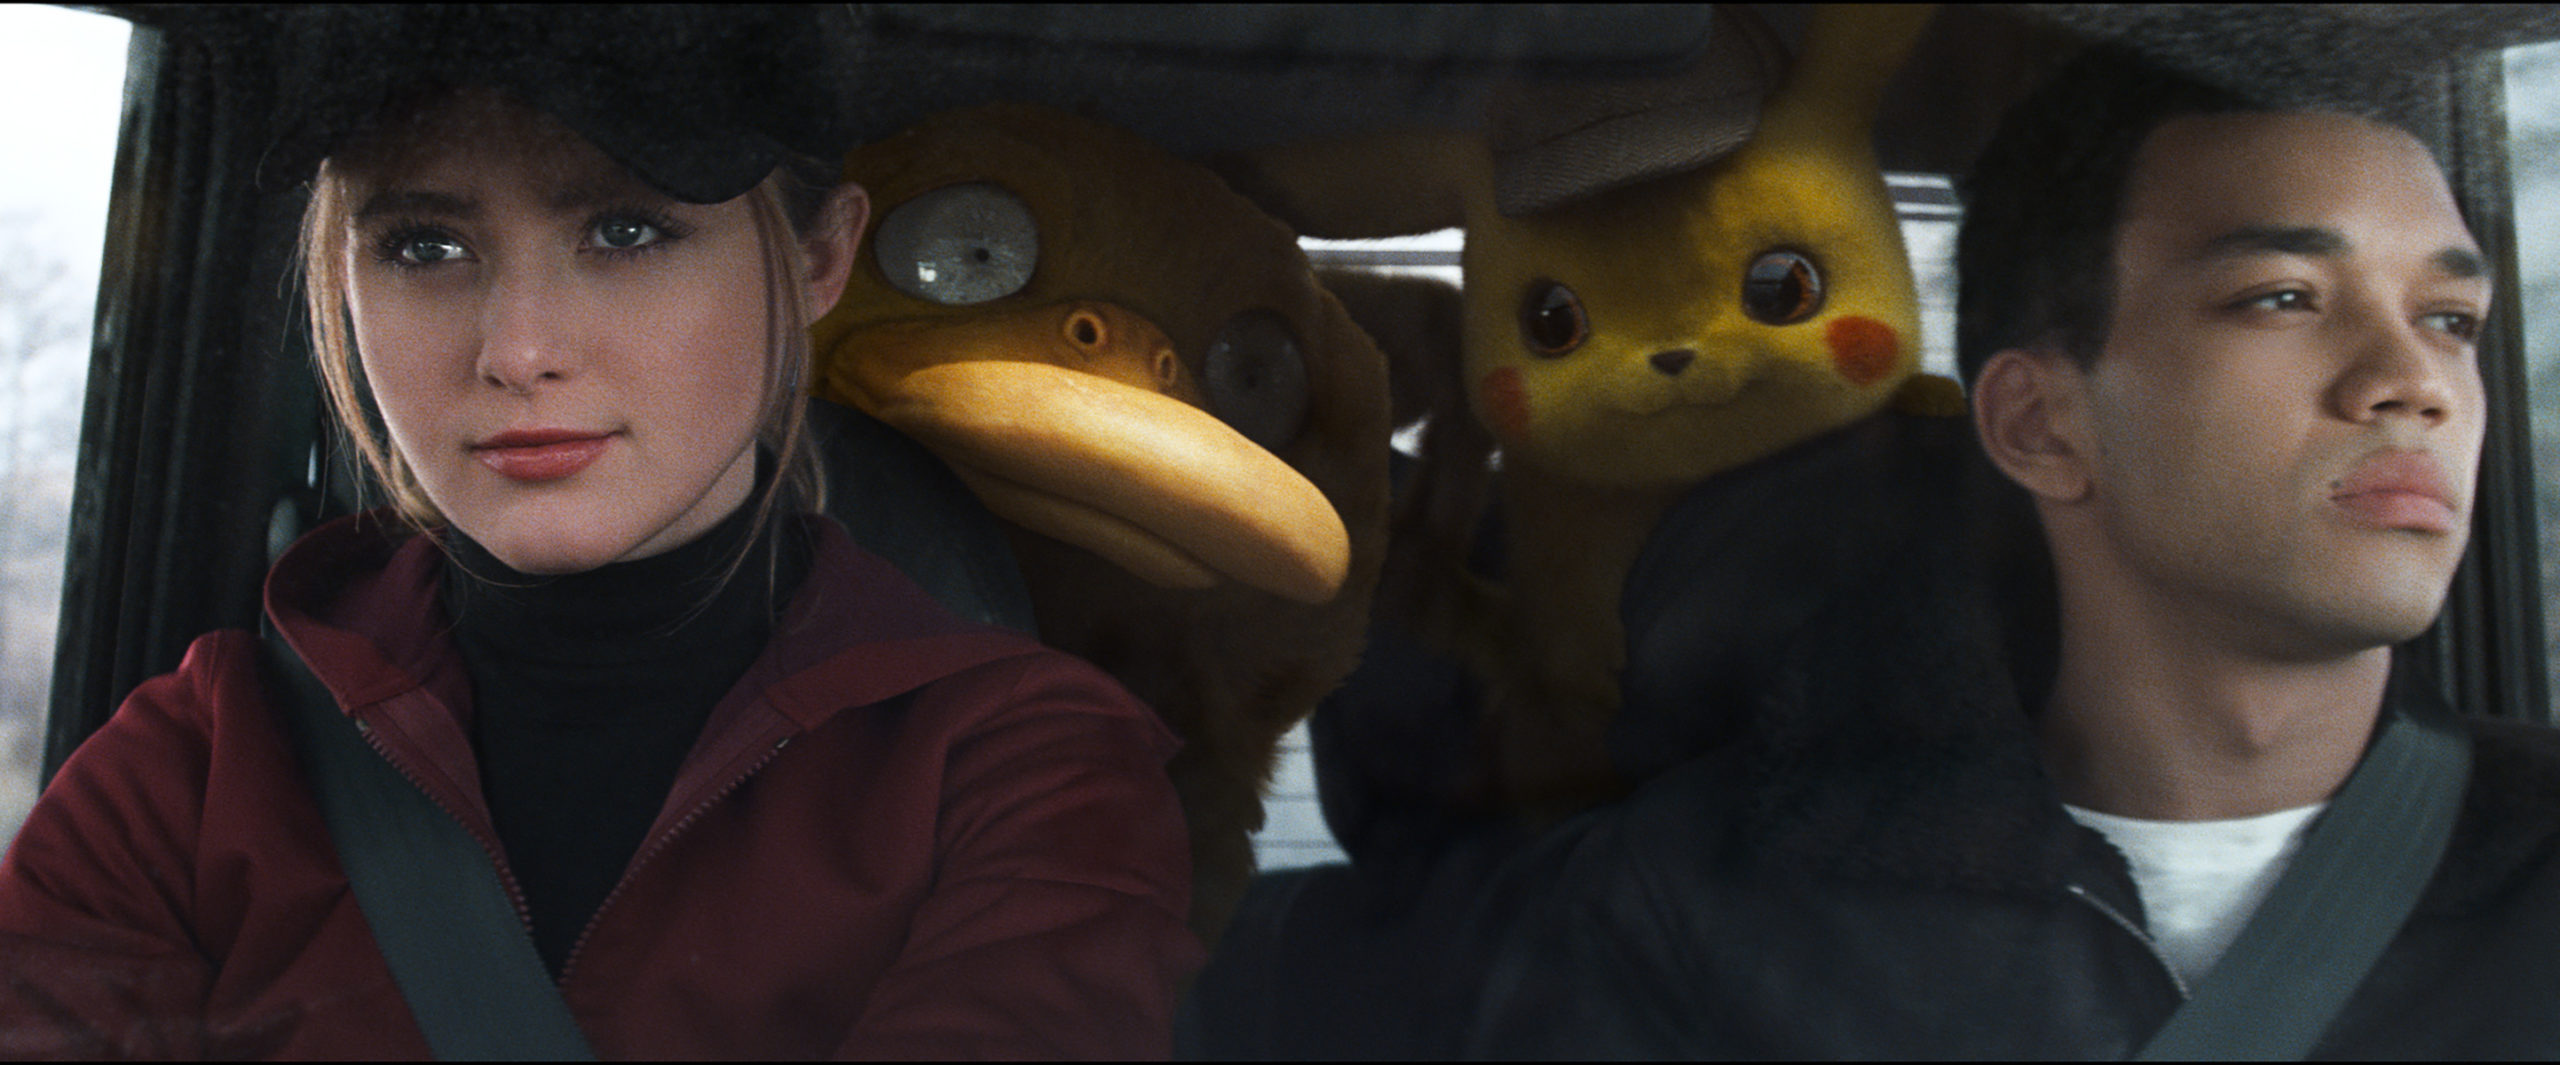 "(L-R) KATRHYN NEWTON as Lucy Stevens, Psyduck, Detective Pikachu (RYAN REYNOLDS) and JUSTICE SMITH as Tim Goodman in Legendary Pictures' and Warner Bros. Pictures' comedy adventure ""POKÉMON DETECTIVE PIKACHU,"" a Warner Bros. Pictures release."